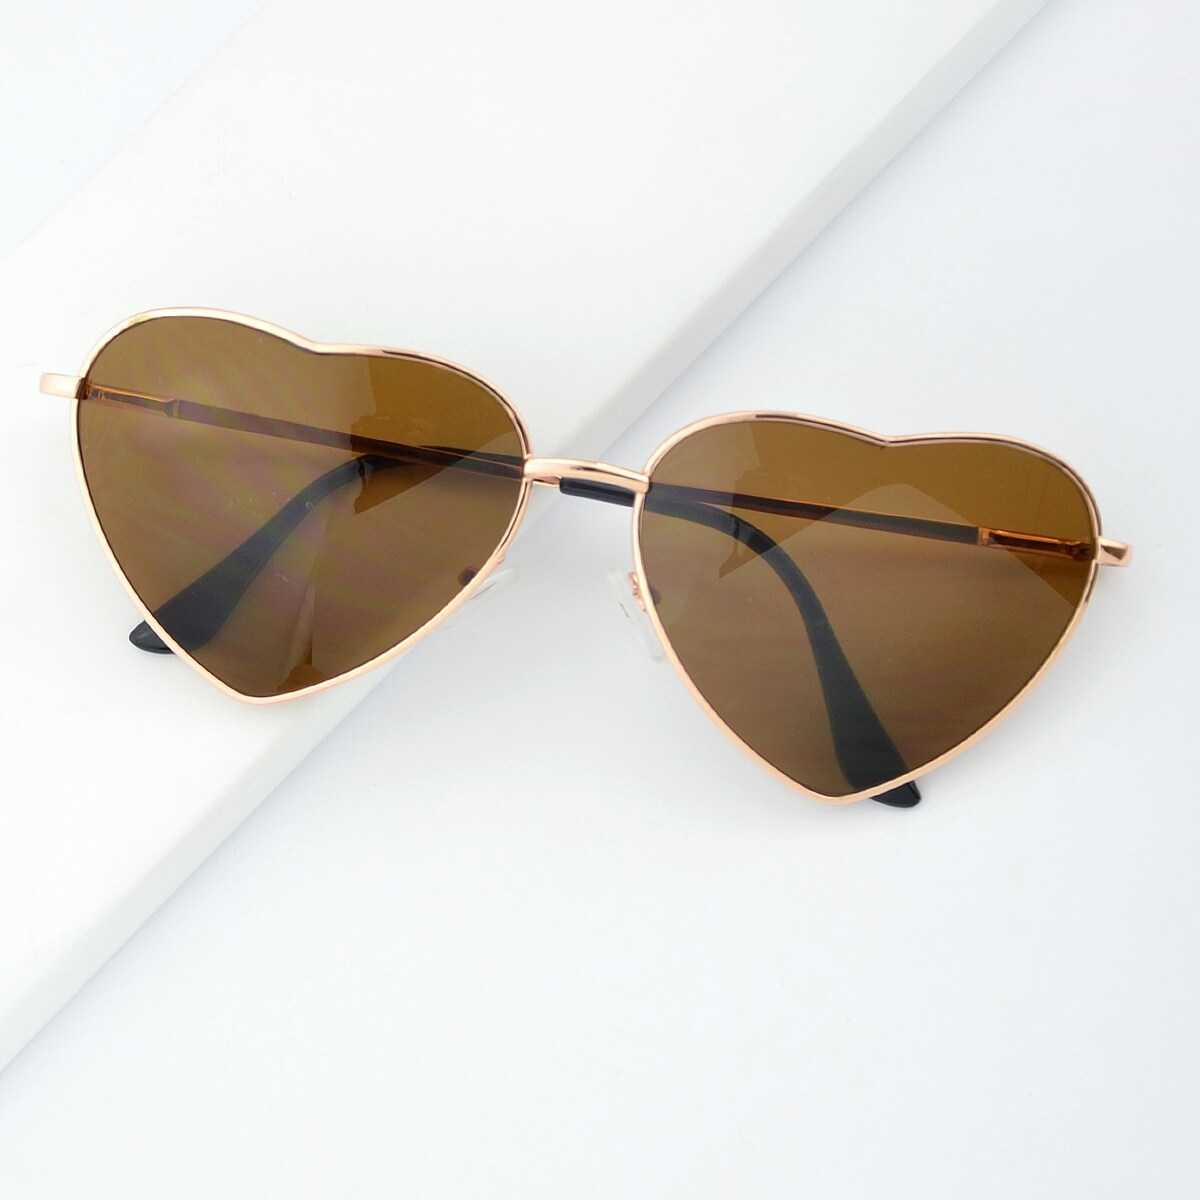 Fashion Gold Silver Alloy Heart Shape Acetate Frame Wrap Sunglasses in Gold by ROMWE on GOOFASH